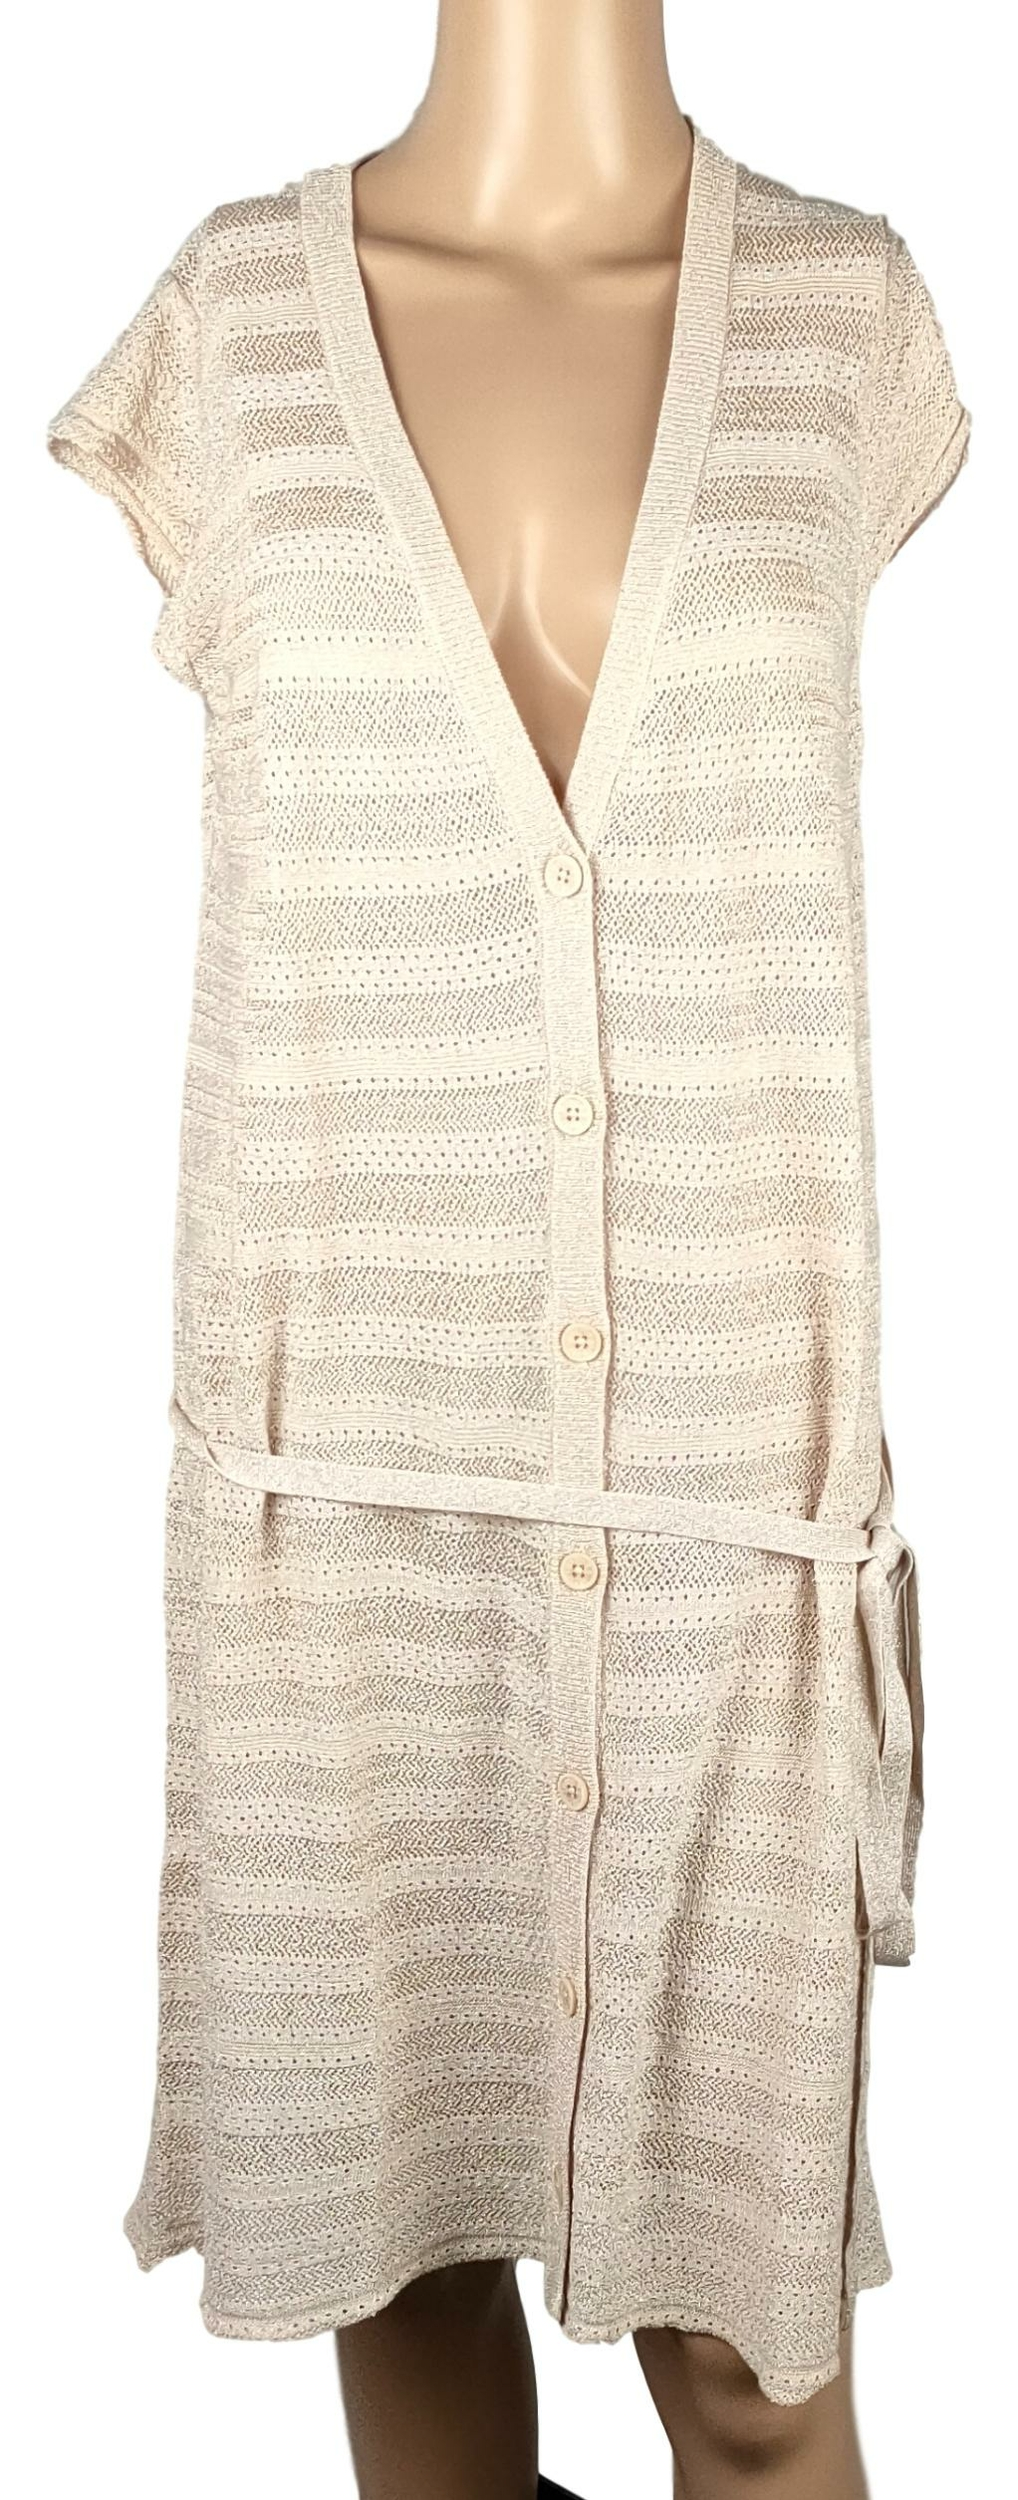 Robe Zadig & Voltaire - Taille M